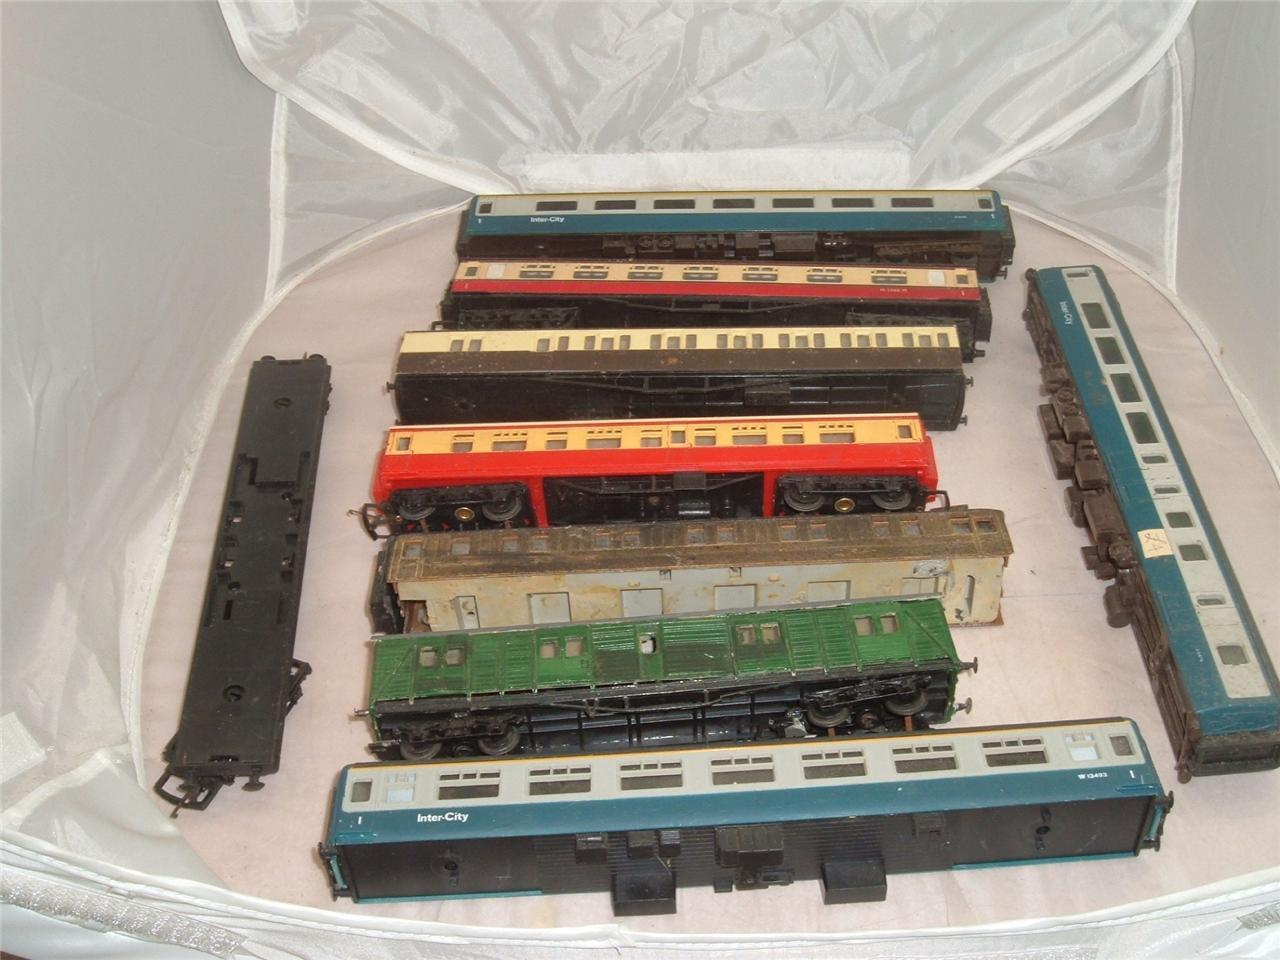 BITS SPARES REPAIRS IDEAL FOR THE RAILWAY modelloloLER SCROLL DOWN TO SEE THE PcalienteOS